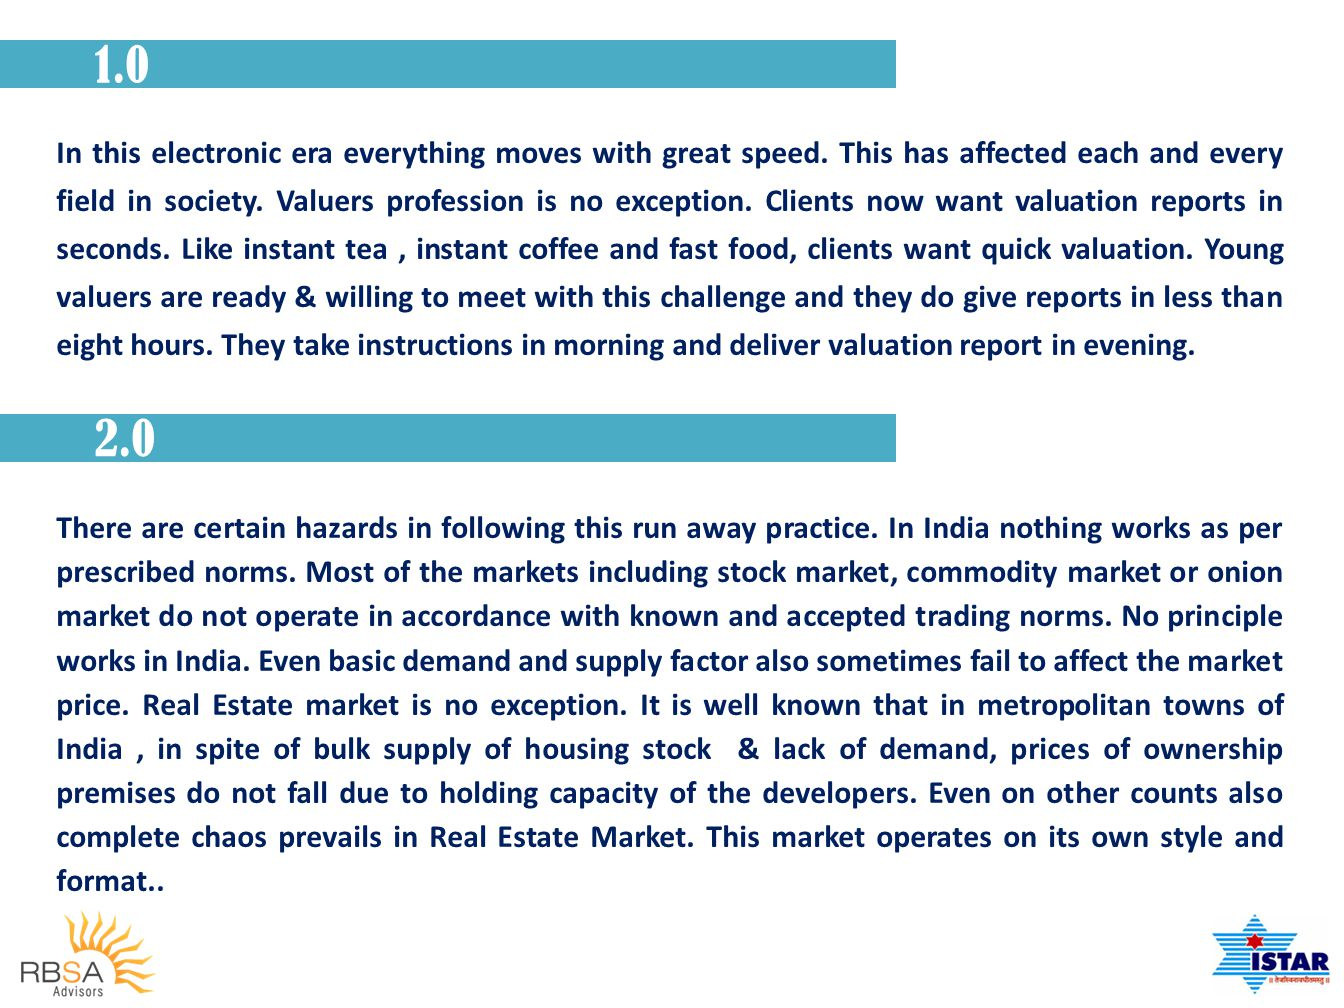 2.1 It is important for runaway valuers to take notice of various features which cause chaos in Real Estate Market.